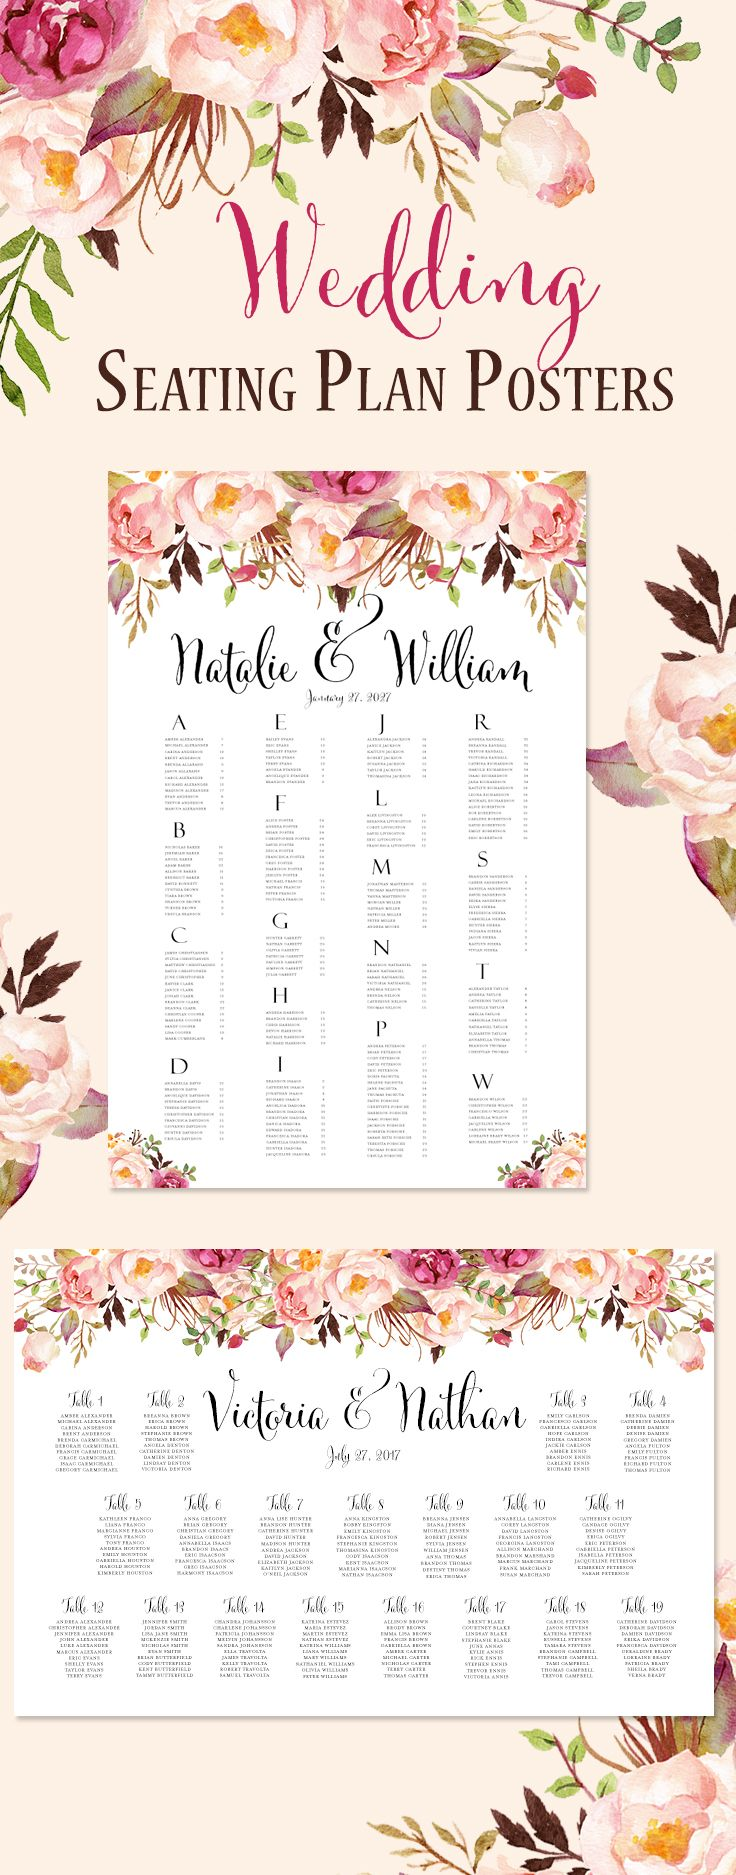 Reception Seating Chart Posters Print Ready Floral Seating Plan – Seating Chart Poster Template